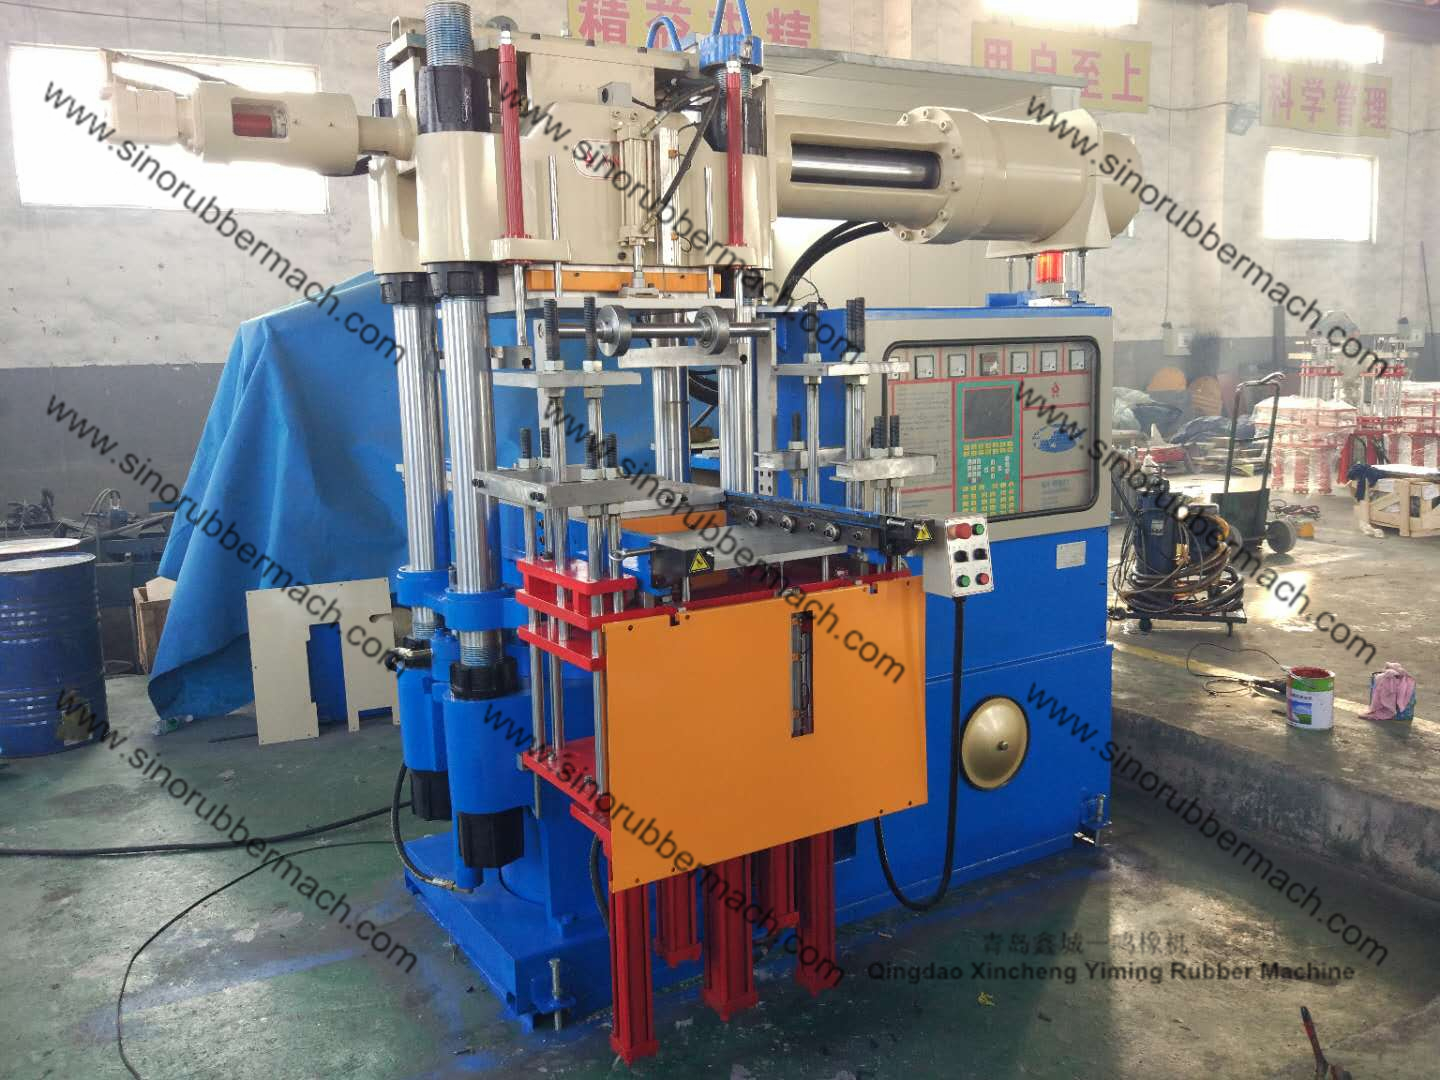 RH300TON-FTMO-4RT Rubber Injection Molding Machine